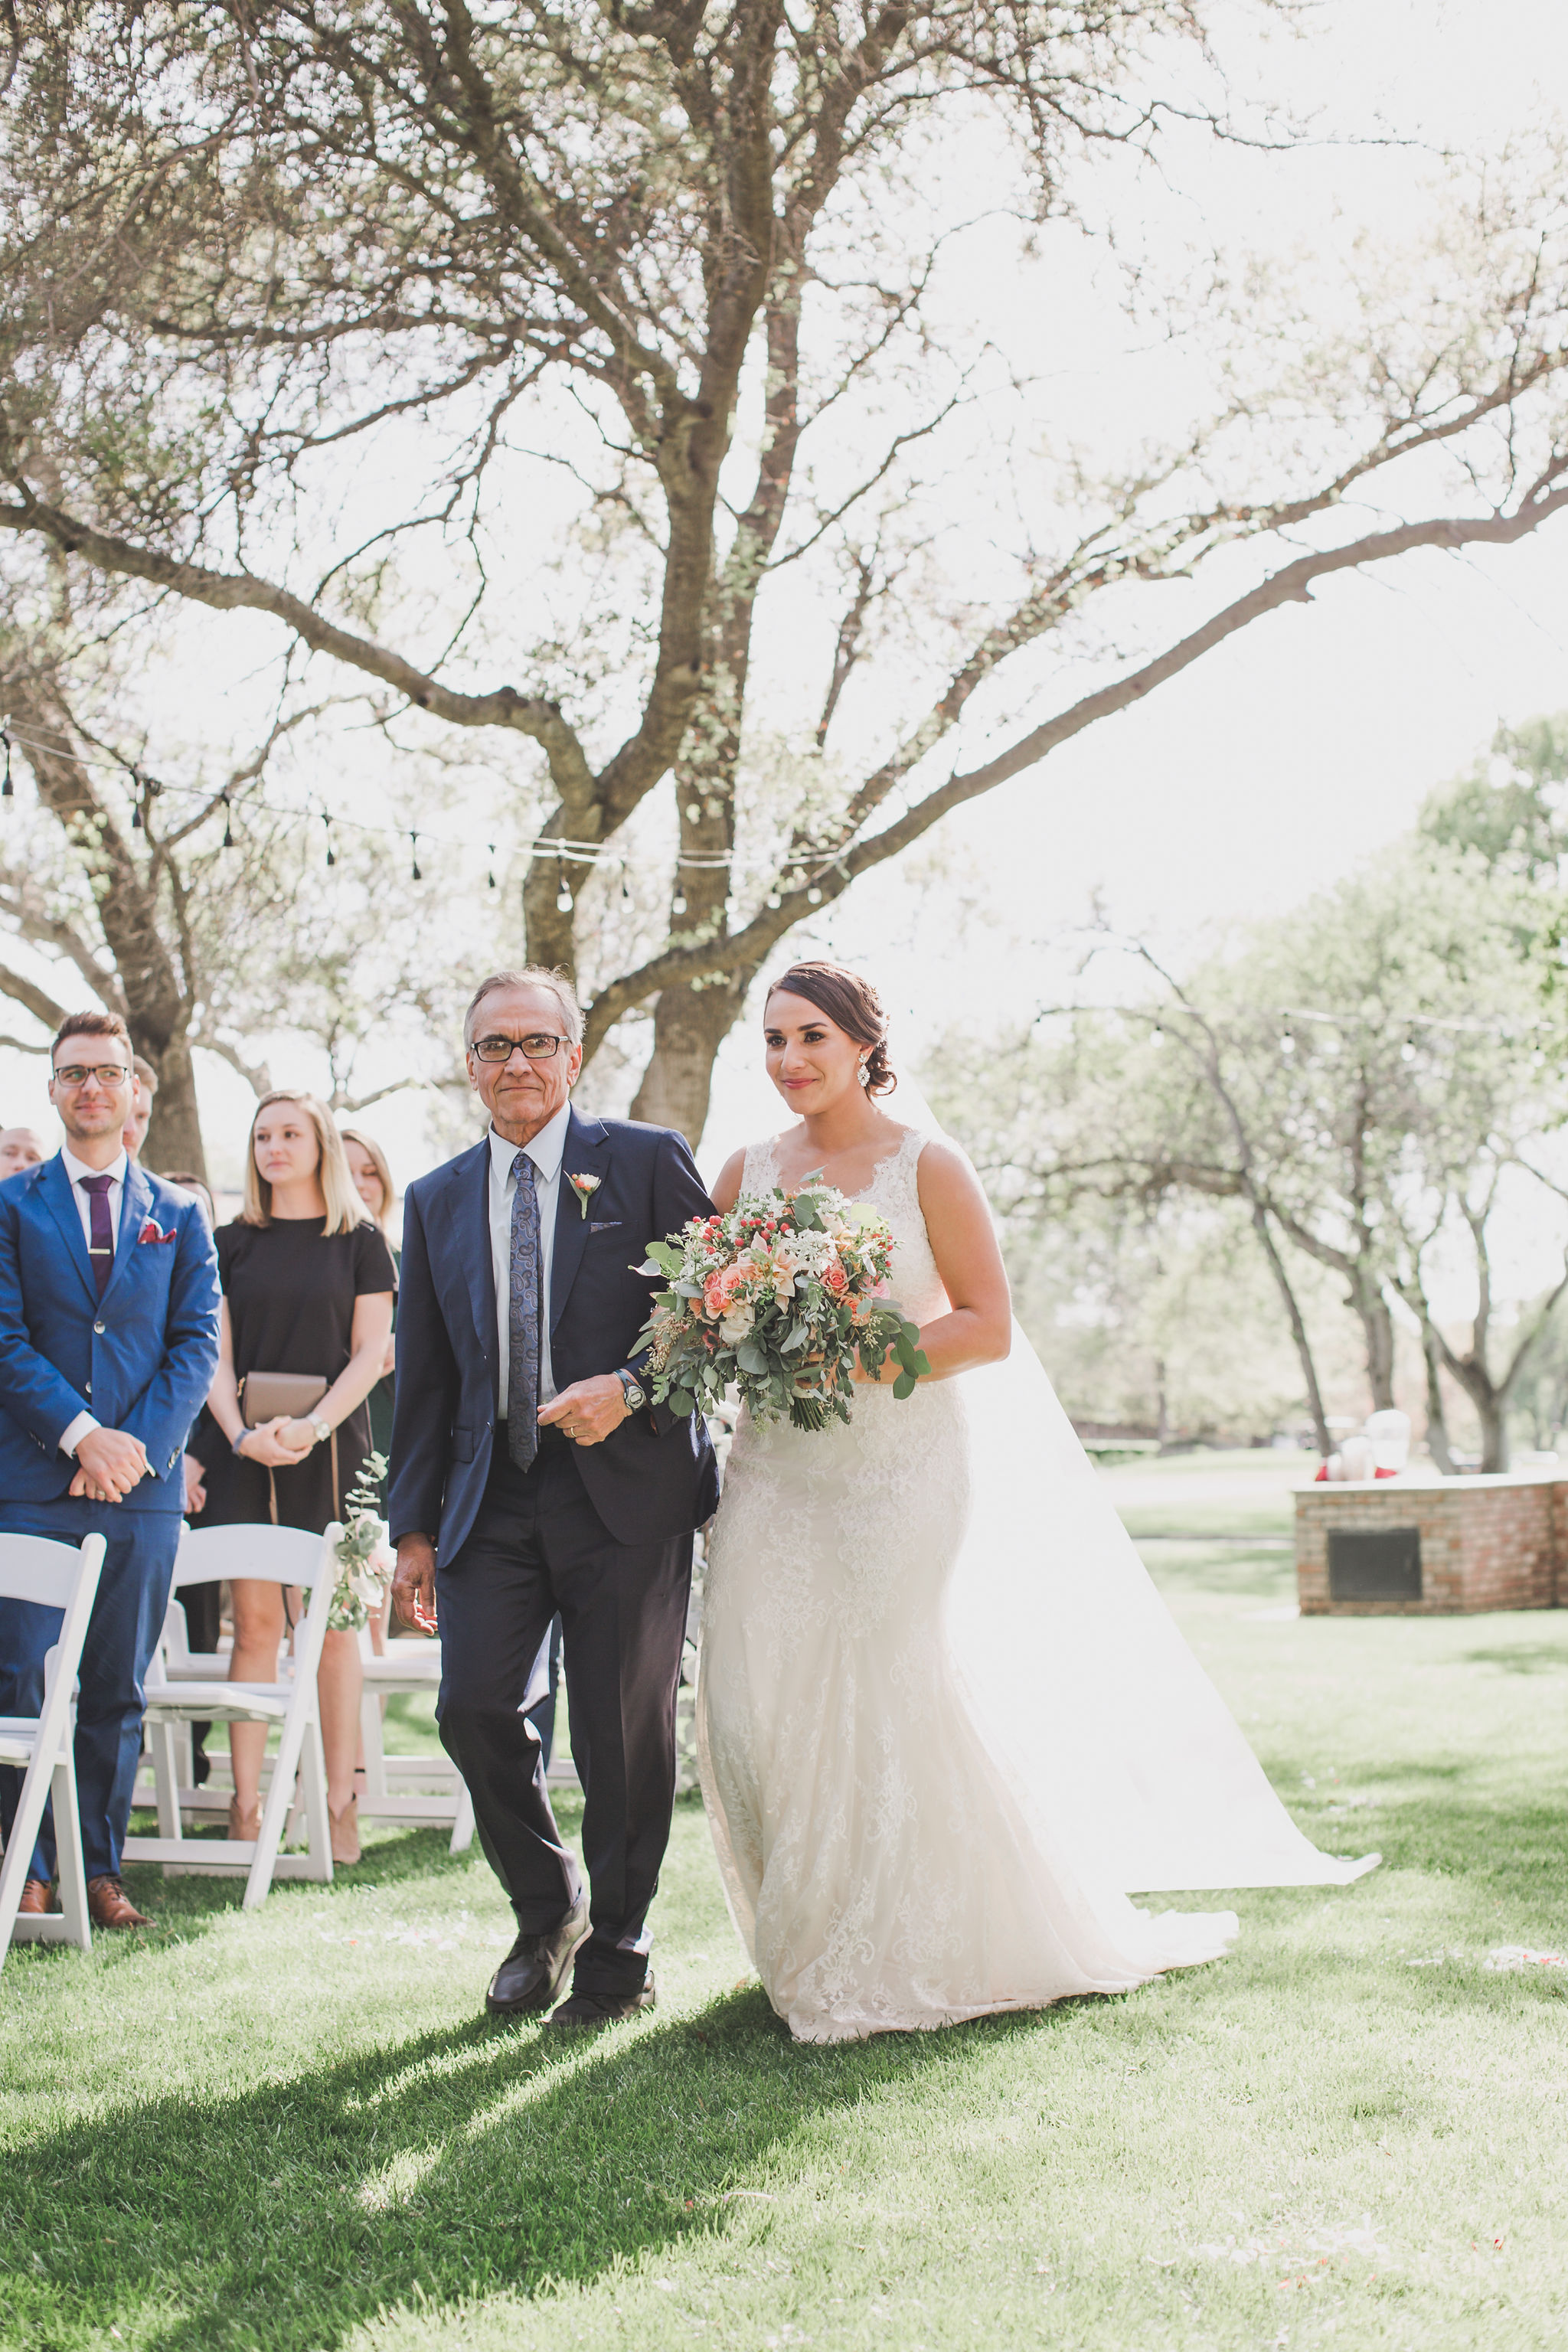 AVH_Photography_canyon_oaks_wedding_0106.jpg